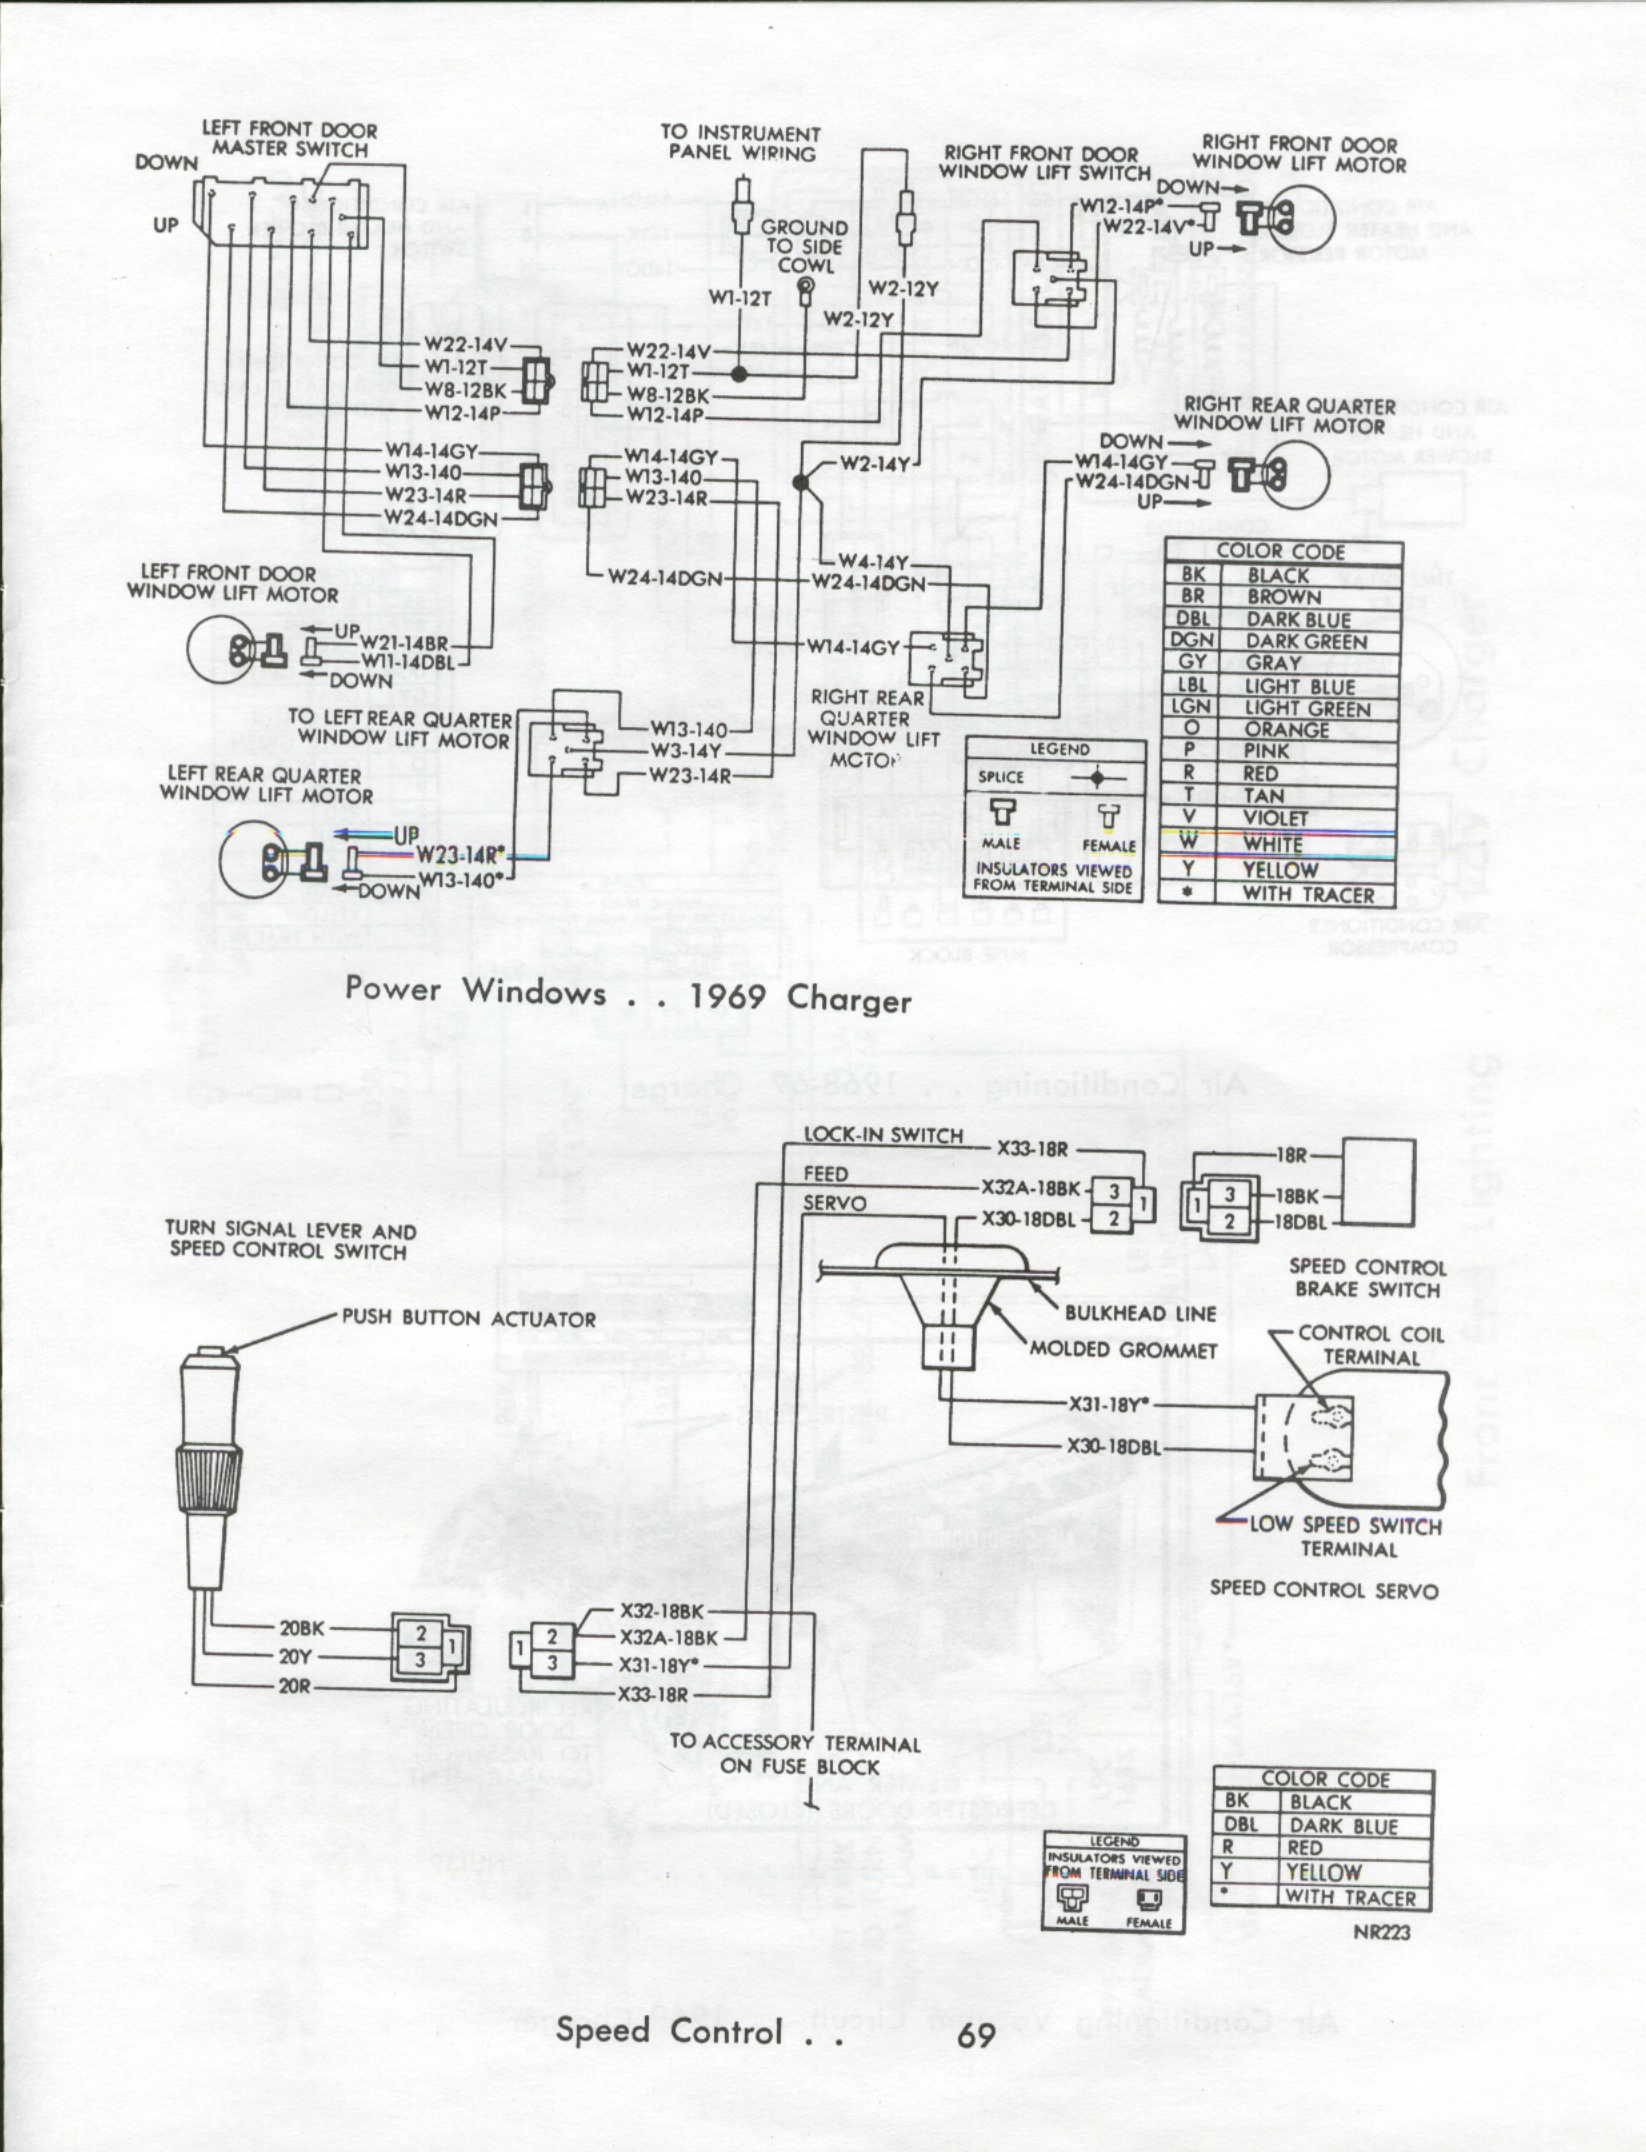 1969 camaro rear wiring harness route